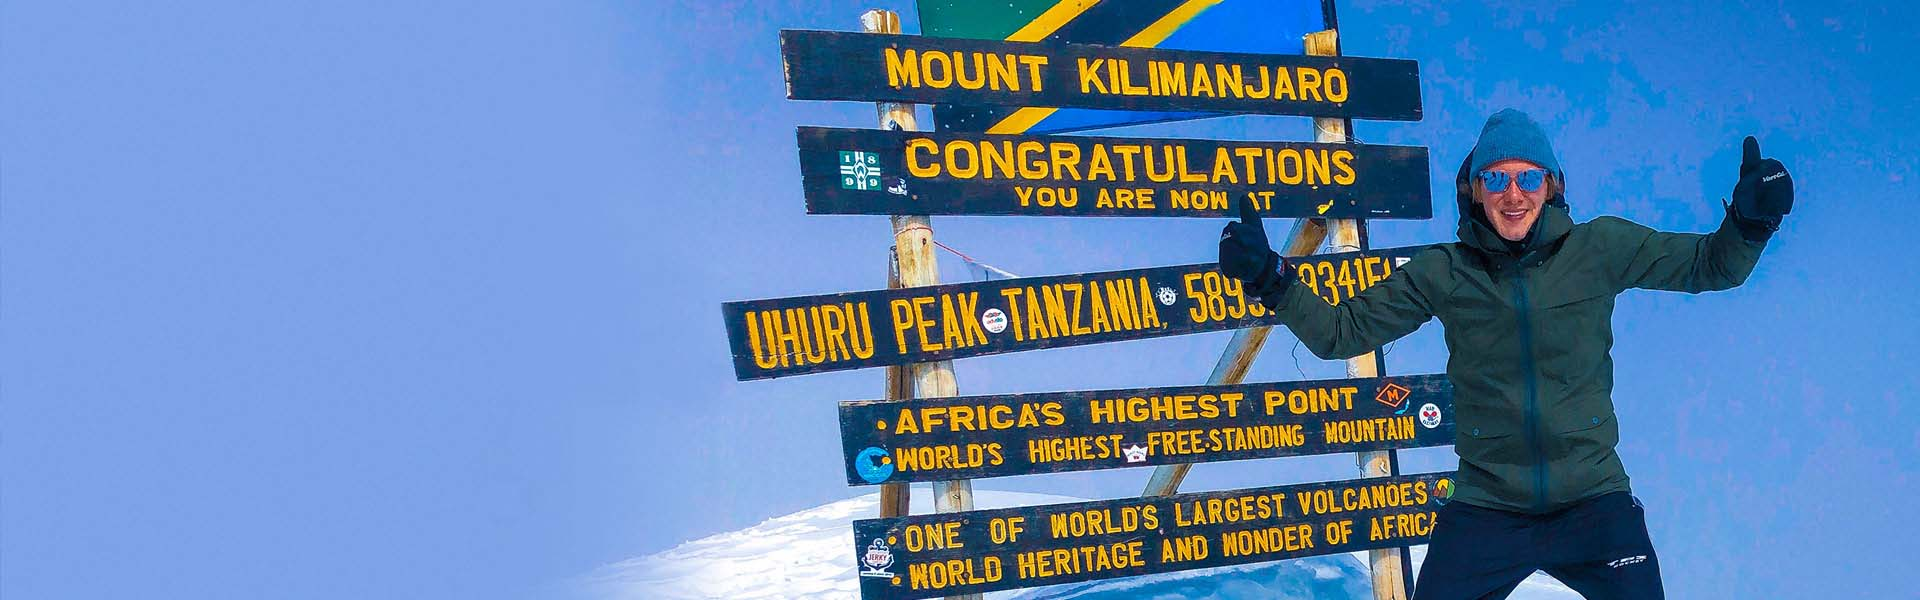 image of Viktor Frisk at Mount Kilimanjaro